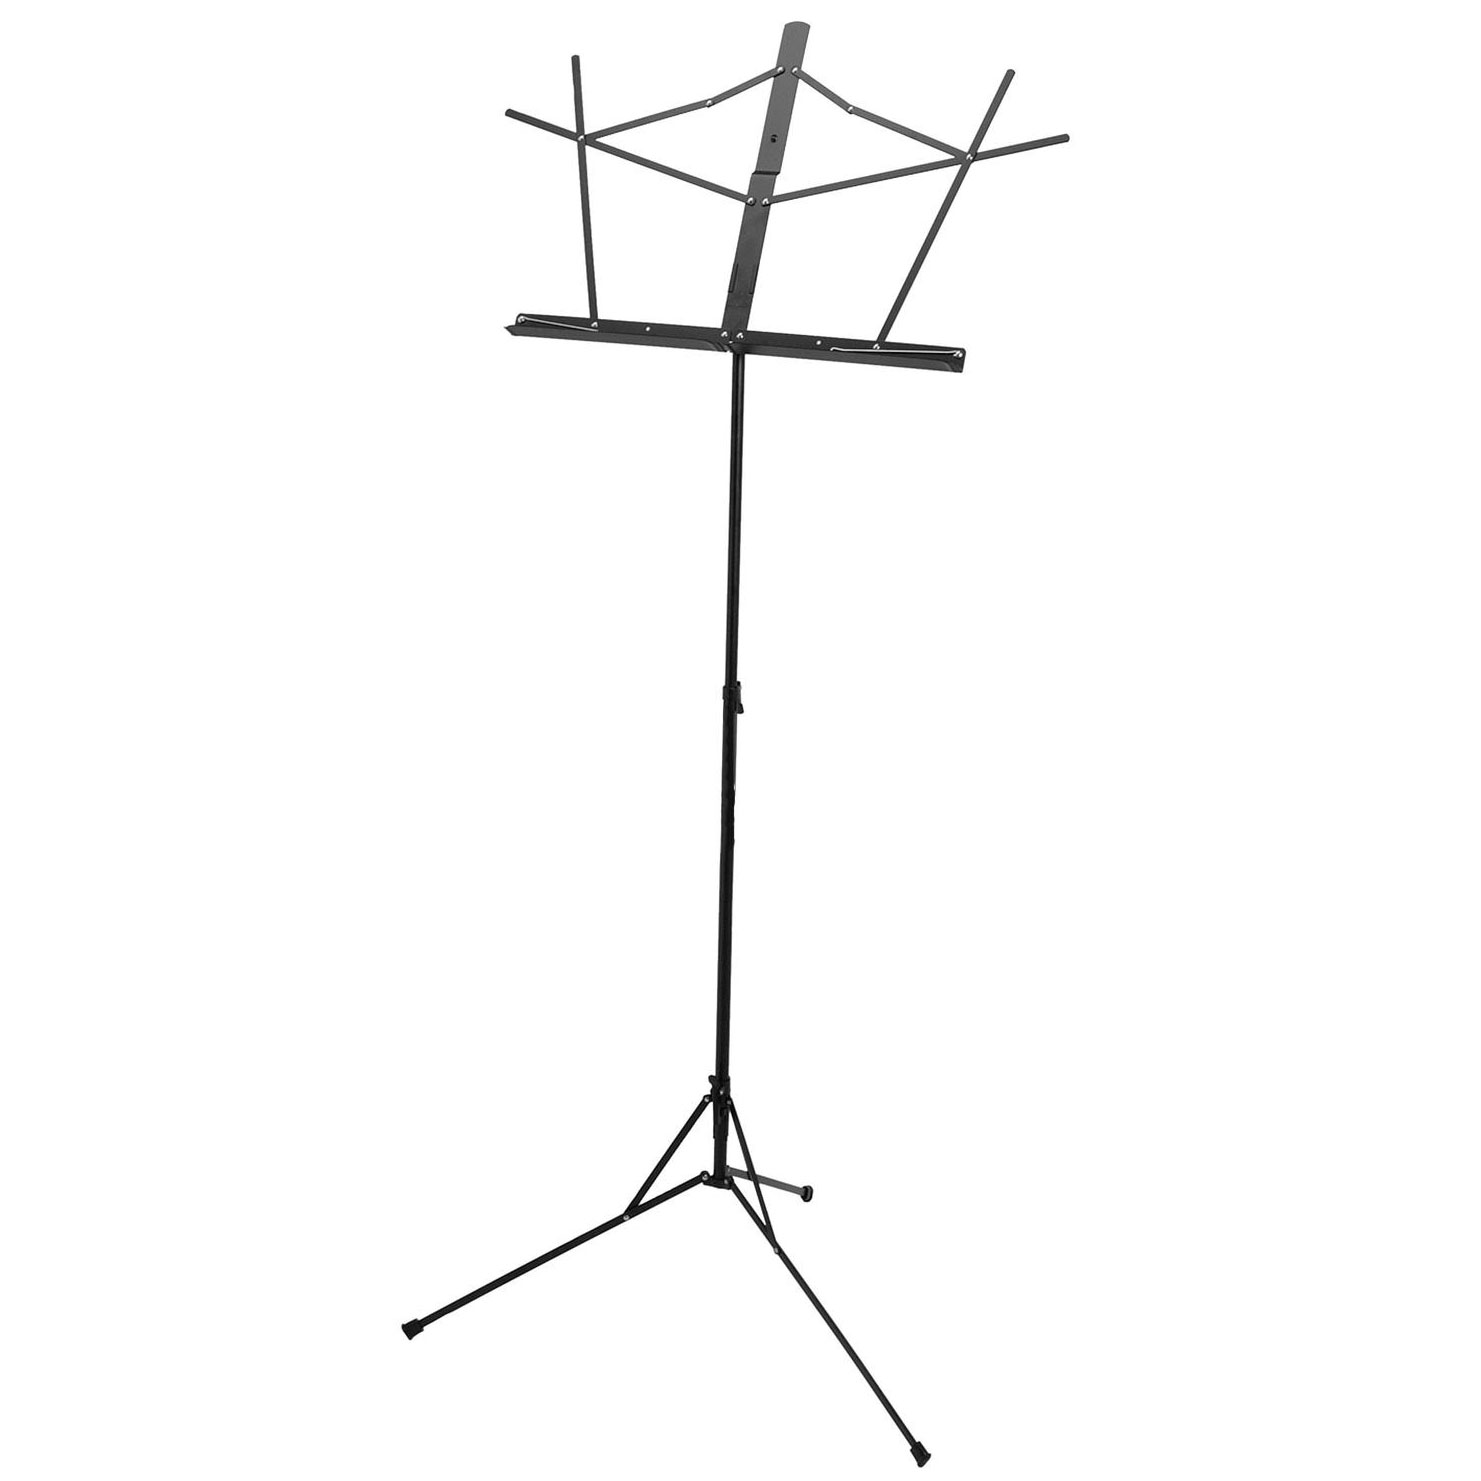 Sheet Music clipart music stand #11